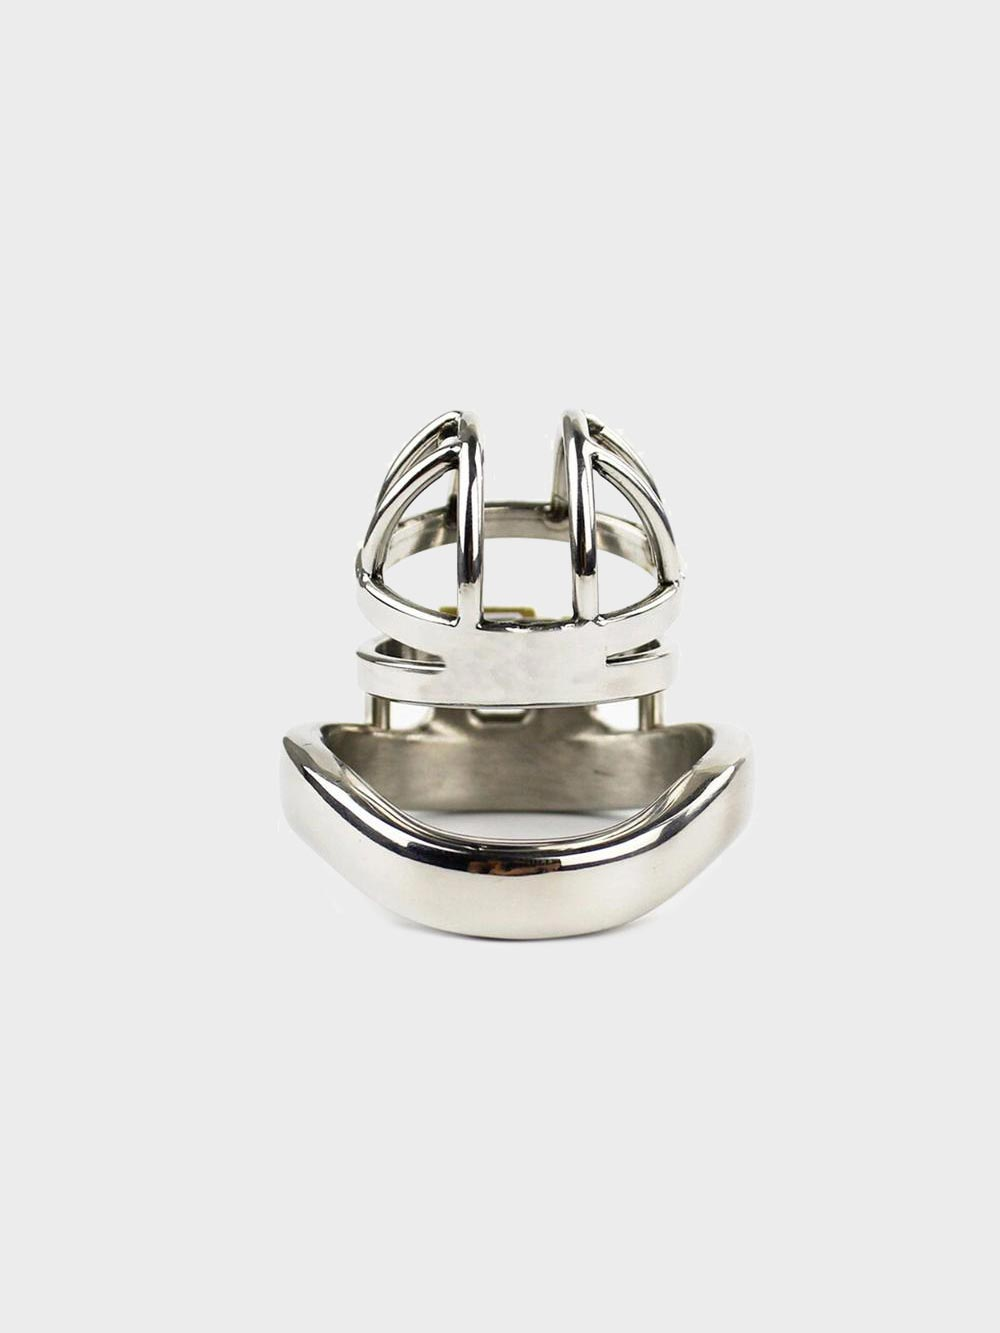 Control your husband with this short chastity cage and keep the key.